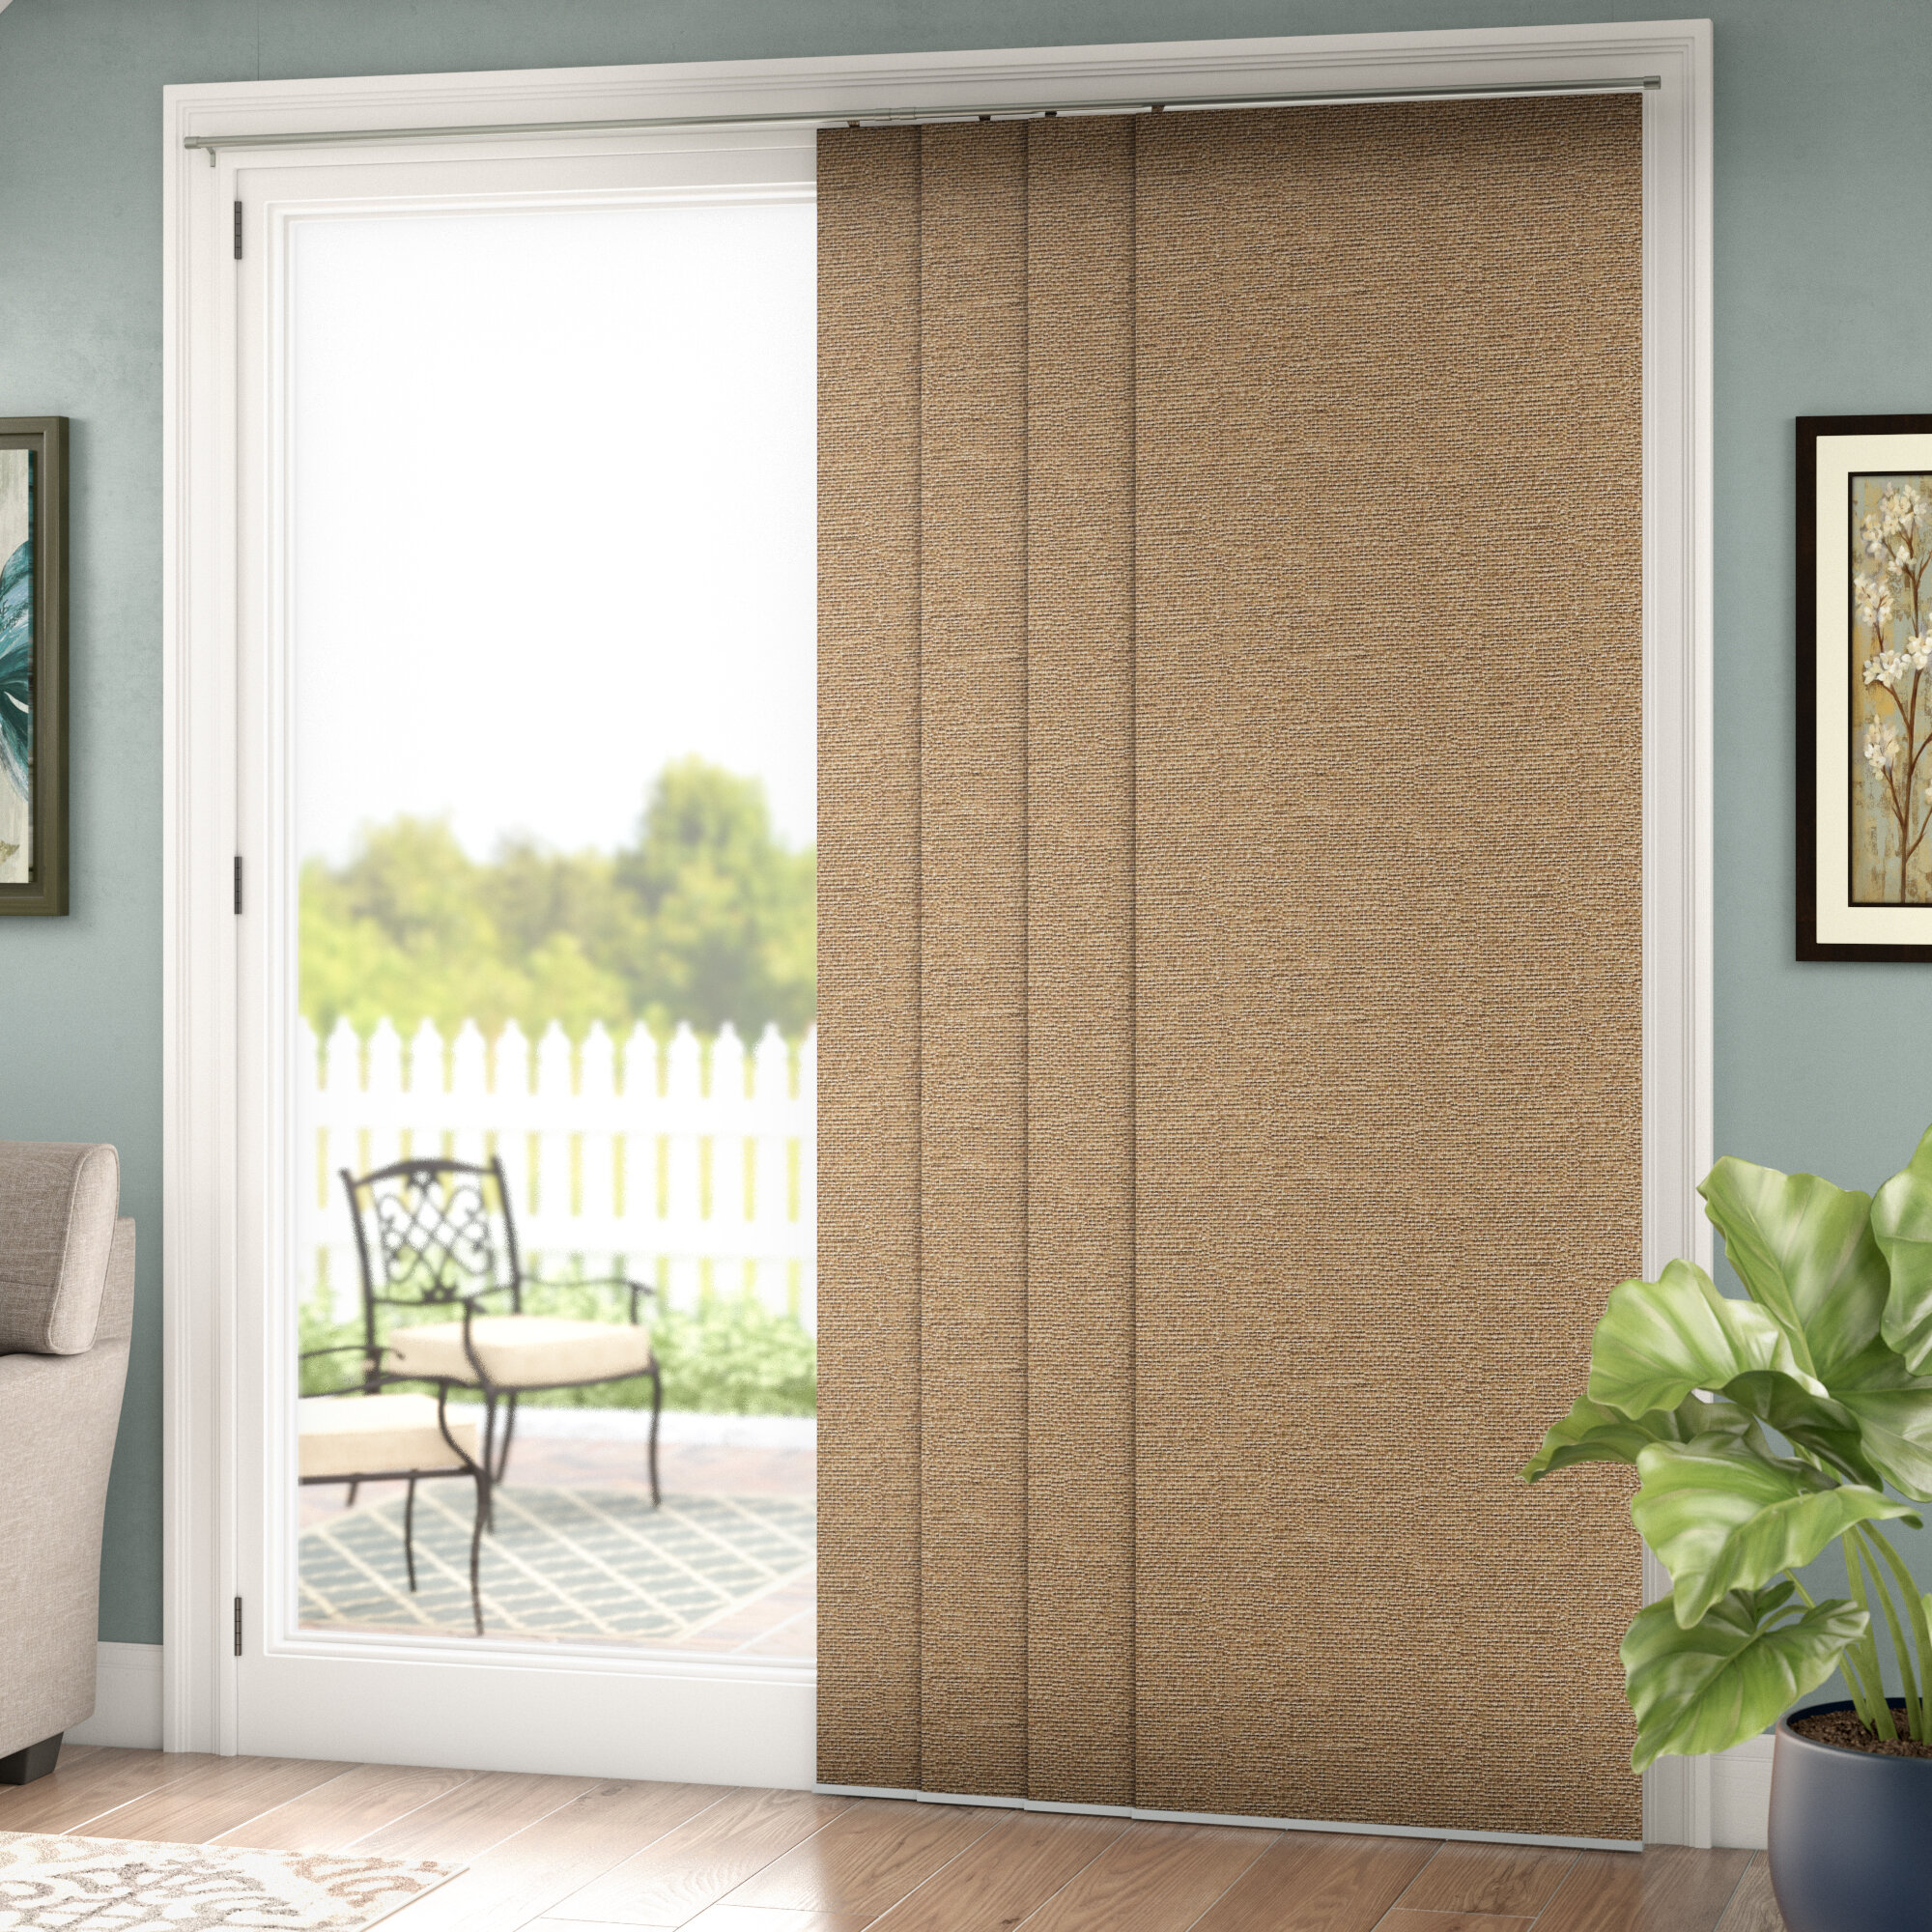 patio application blinds right color vertical window black plus slider get of best marvelous wood door to the faux doors tips sliding and glass for